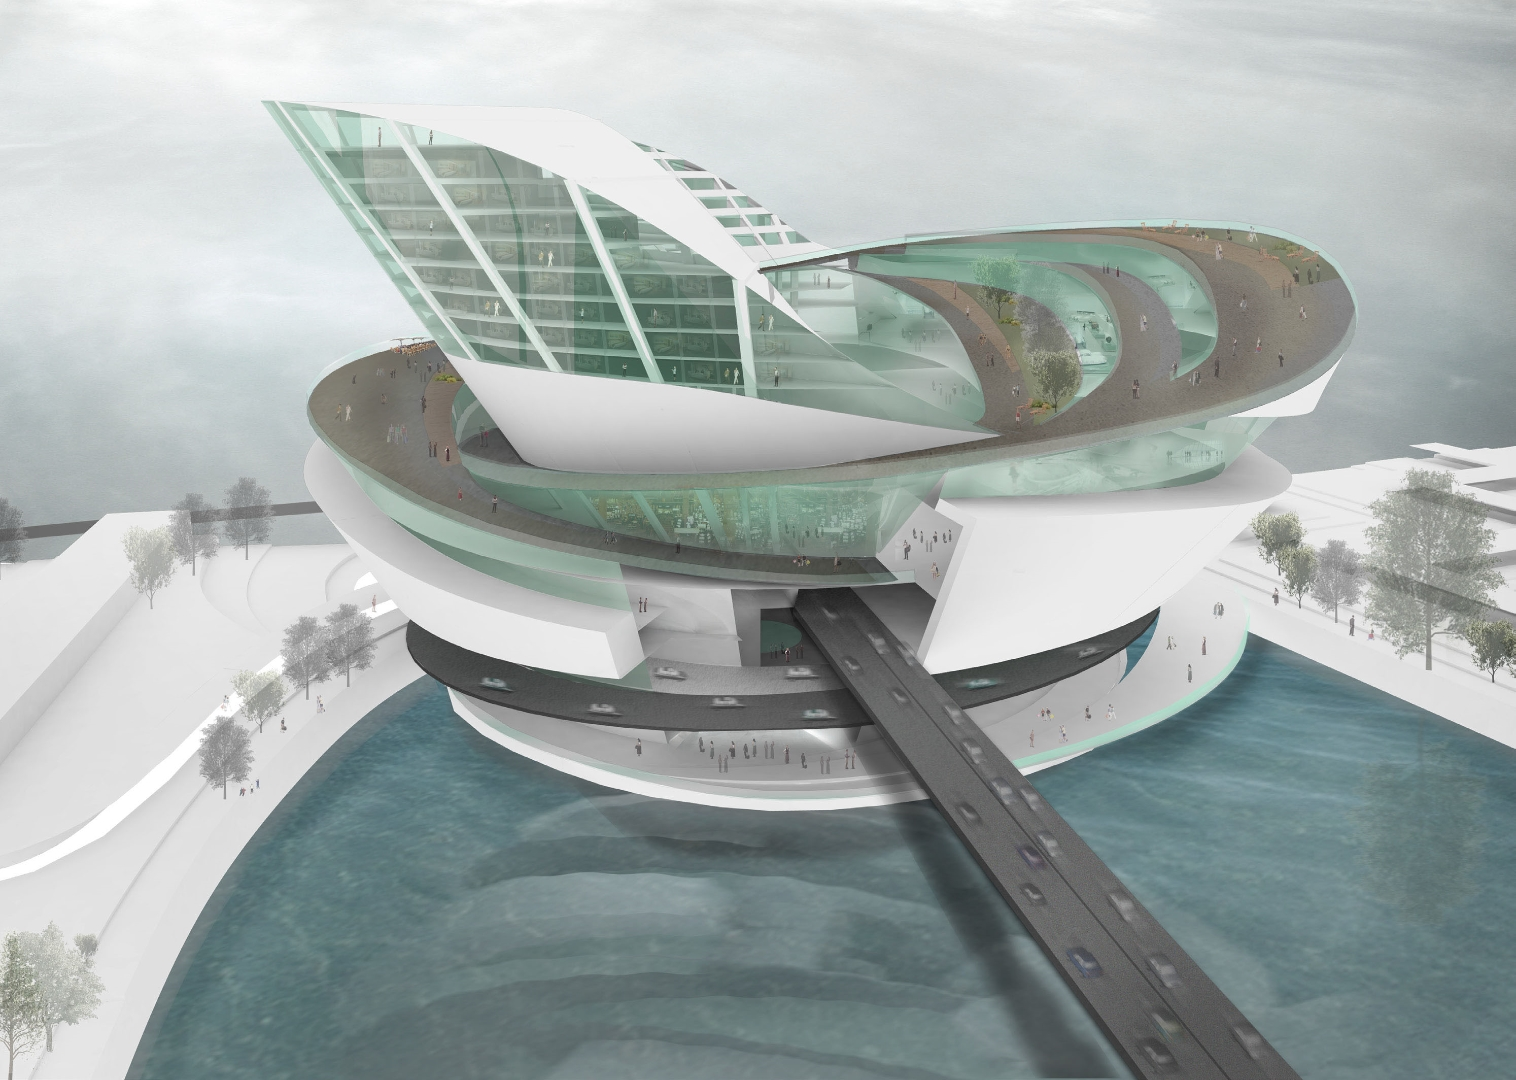 Enlarge Photo: The Possibility of an Island: Designing the New Macau Waterfront 1